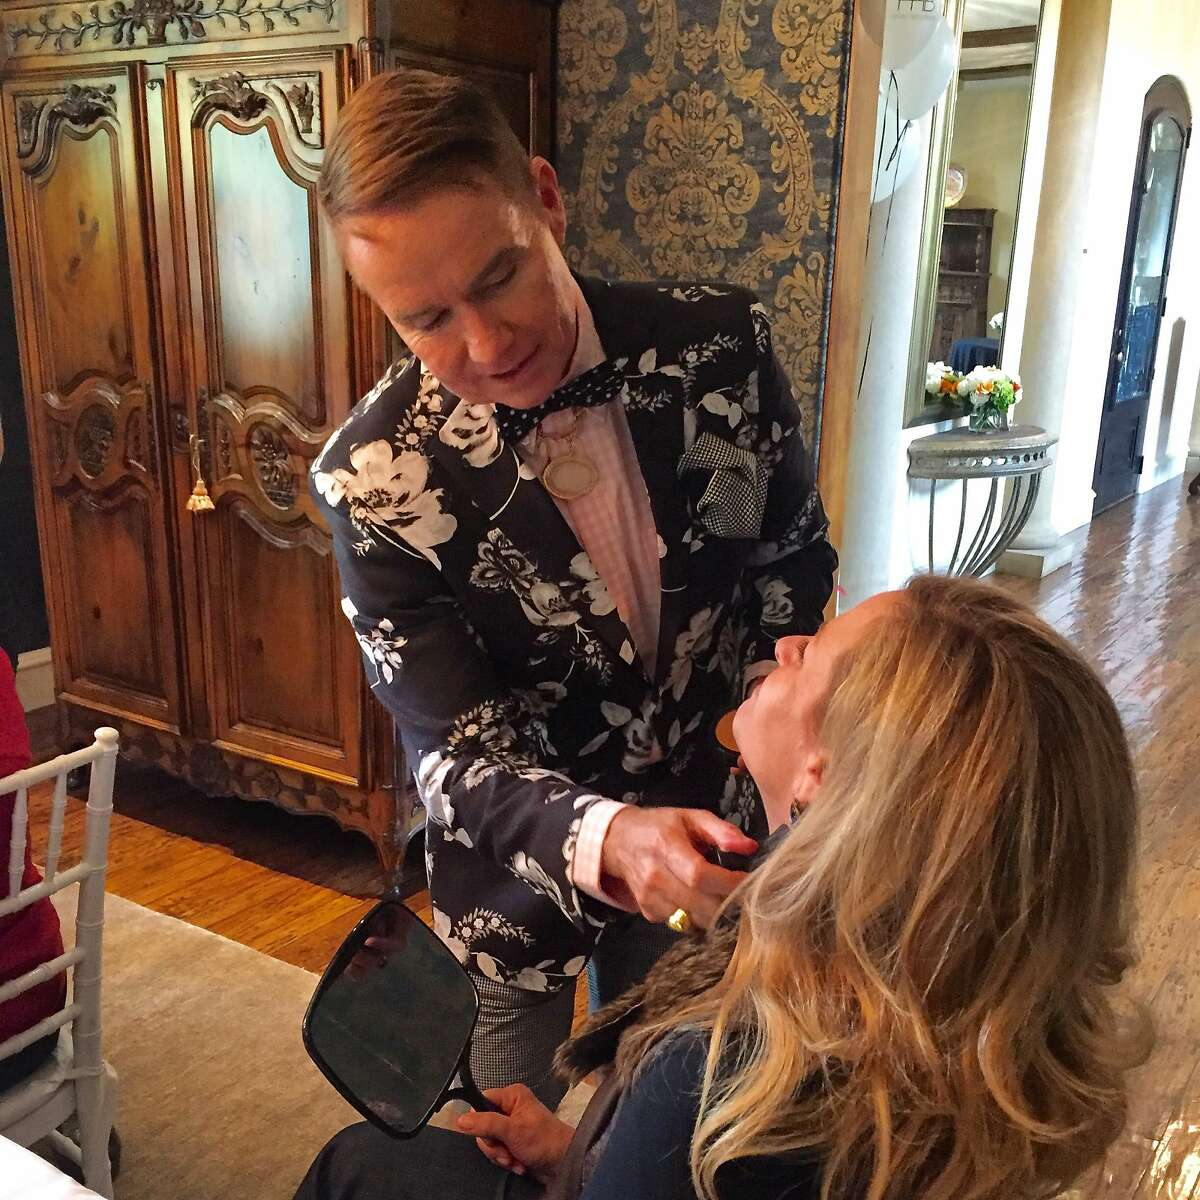 Former Revlon exec, author and Silicon Valley stylist�Harvey�Helms introduces�Harvey�Helms Beauty, a cosmetics company with paraben-free and cruelty-free products sold online. He launched at the home of a Silicon Valley executive in May.